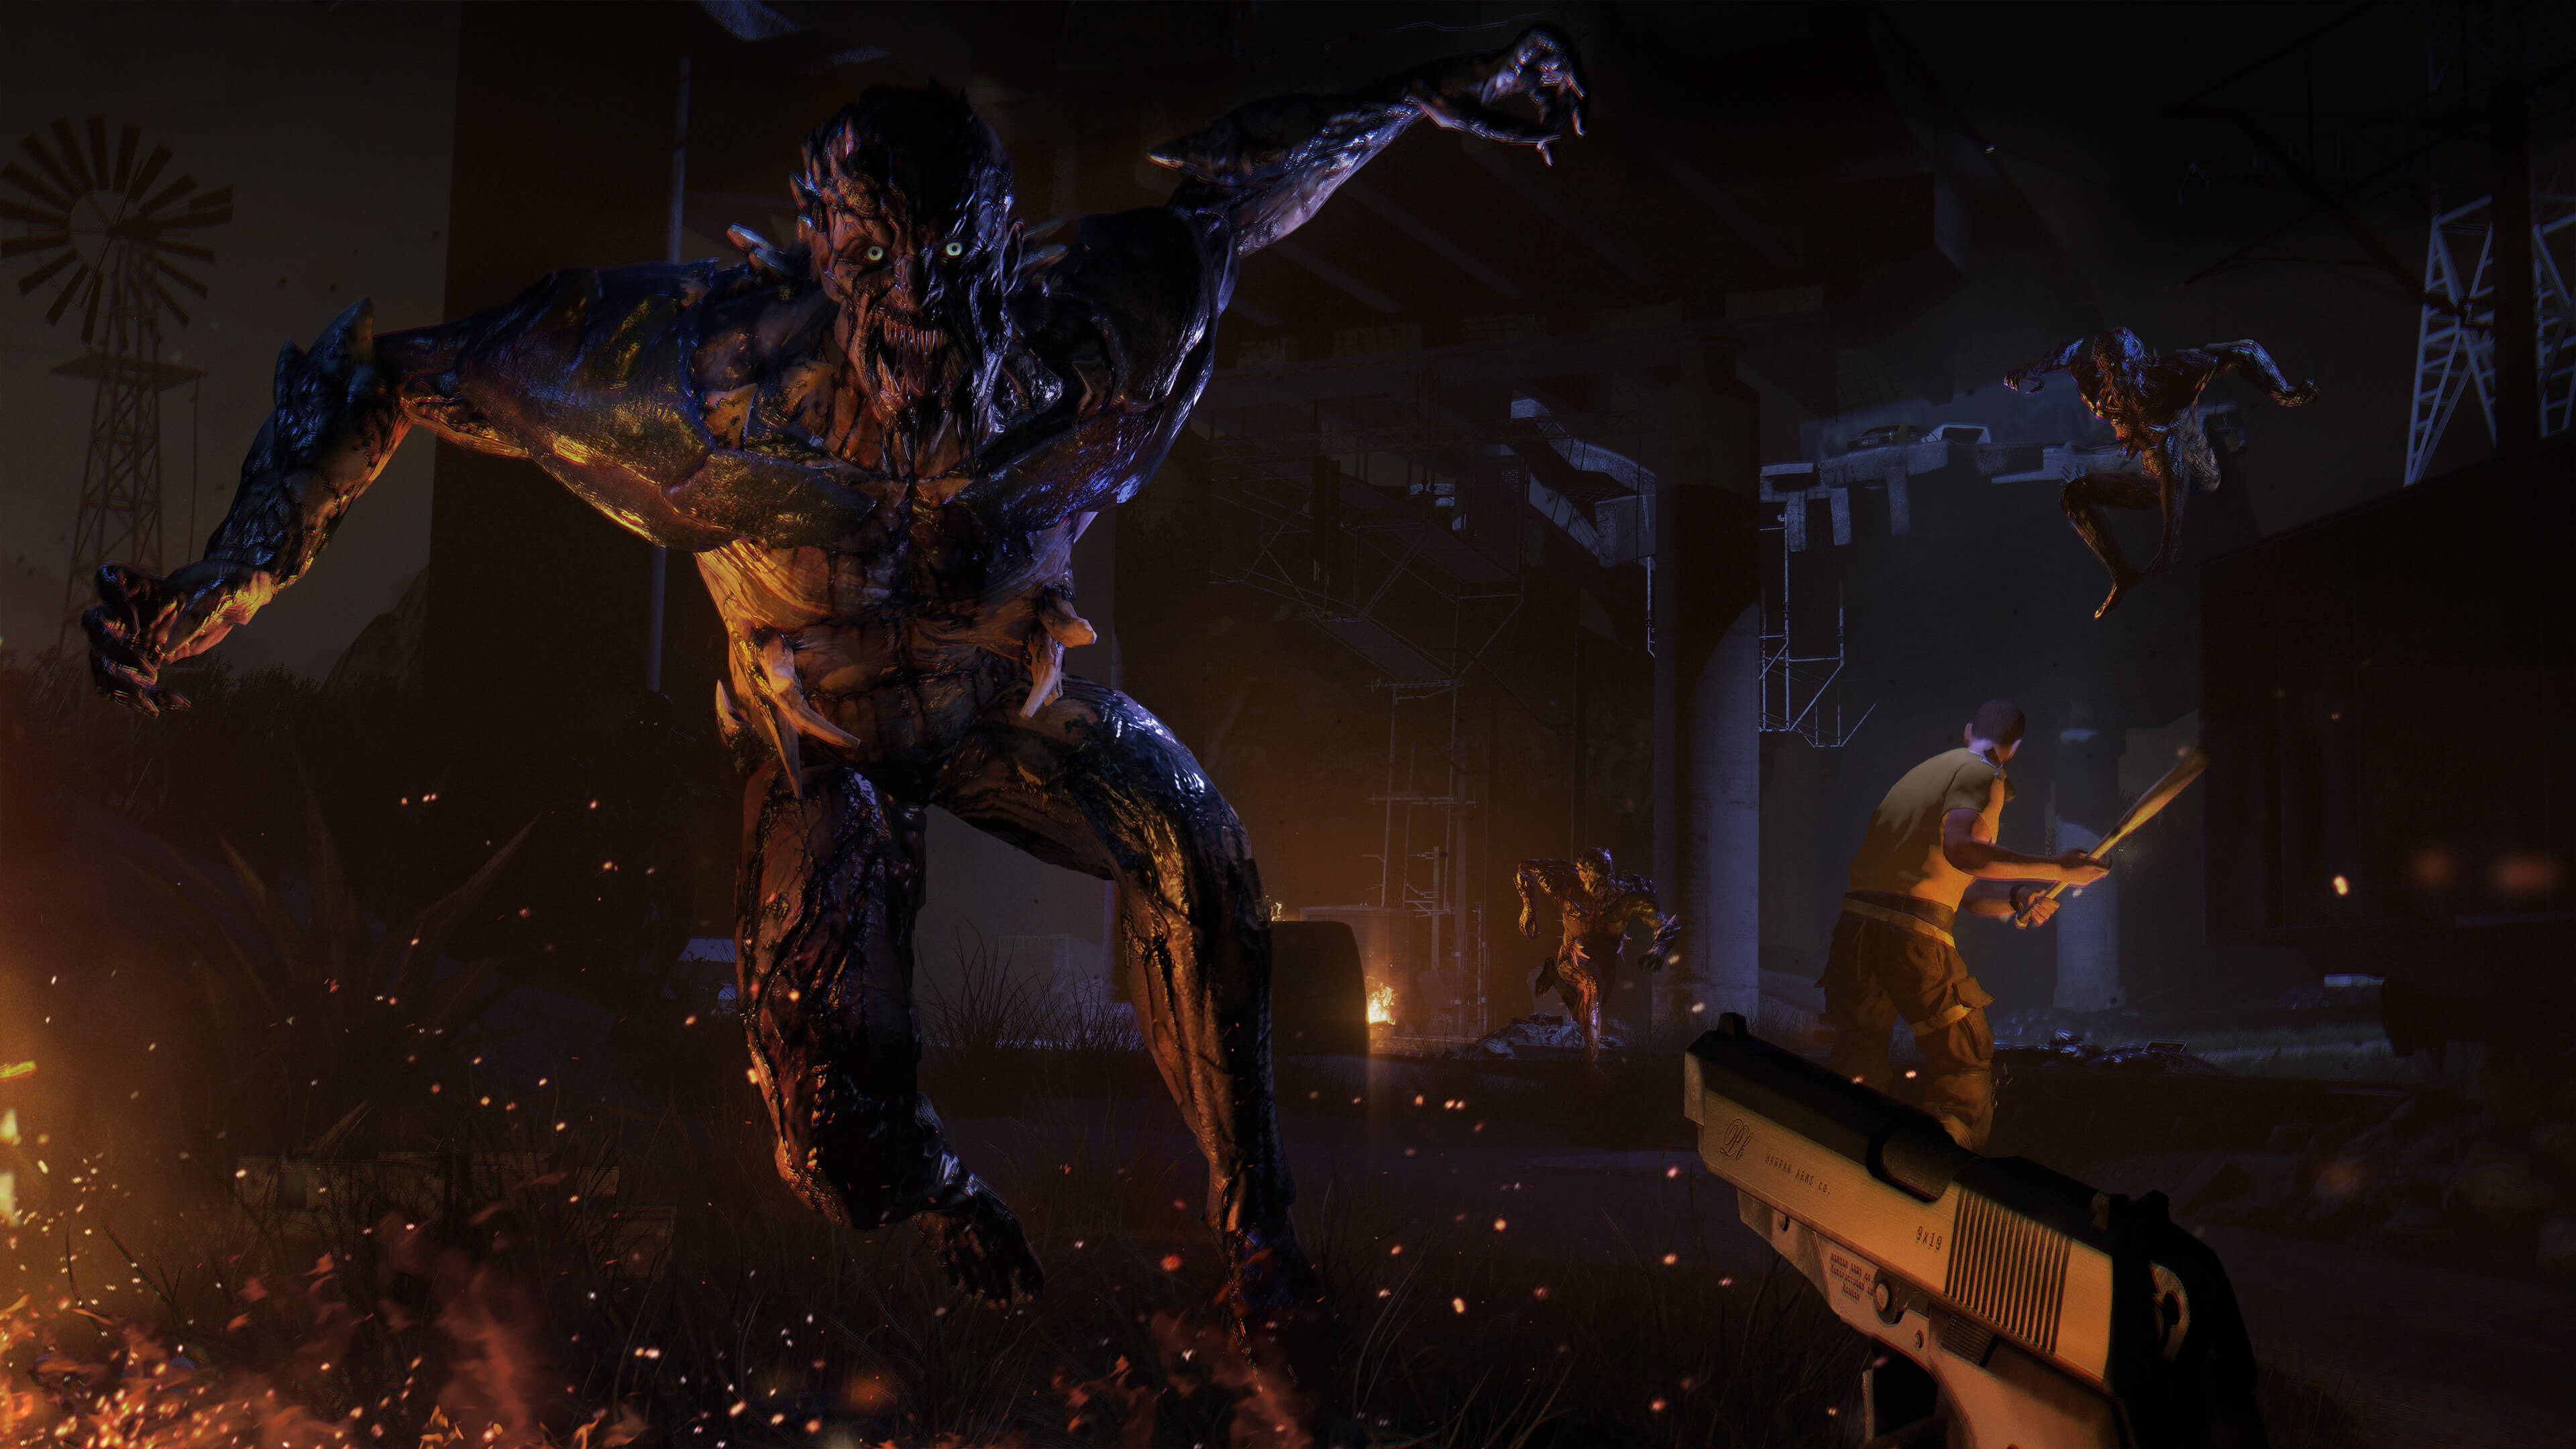 Dying light zombi oyunu pve oyun